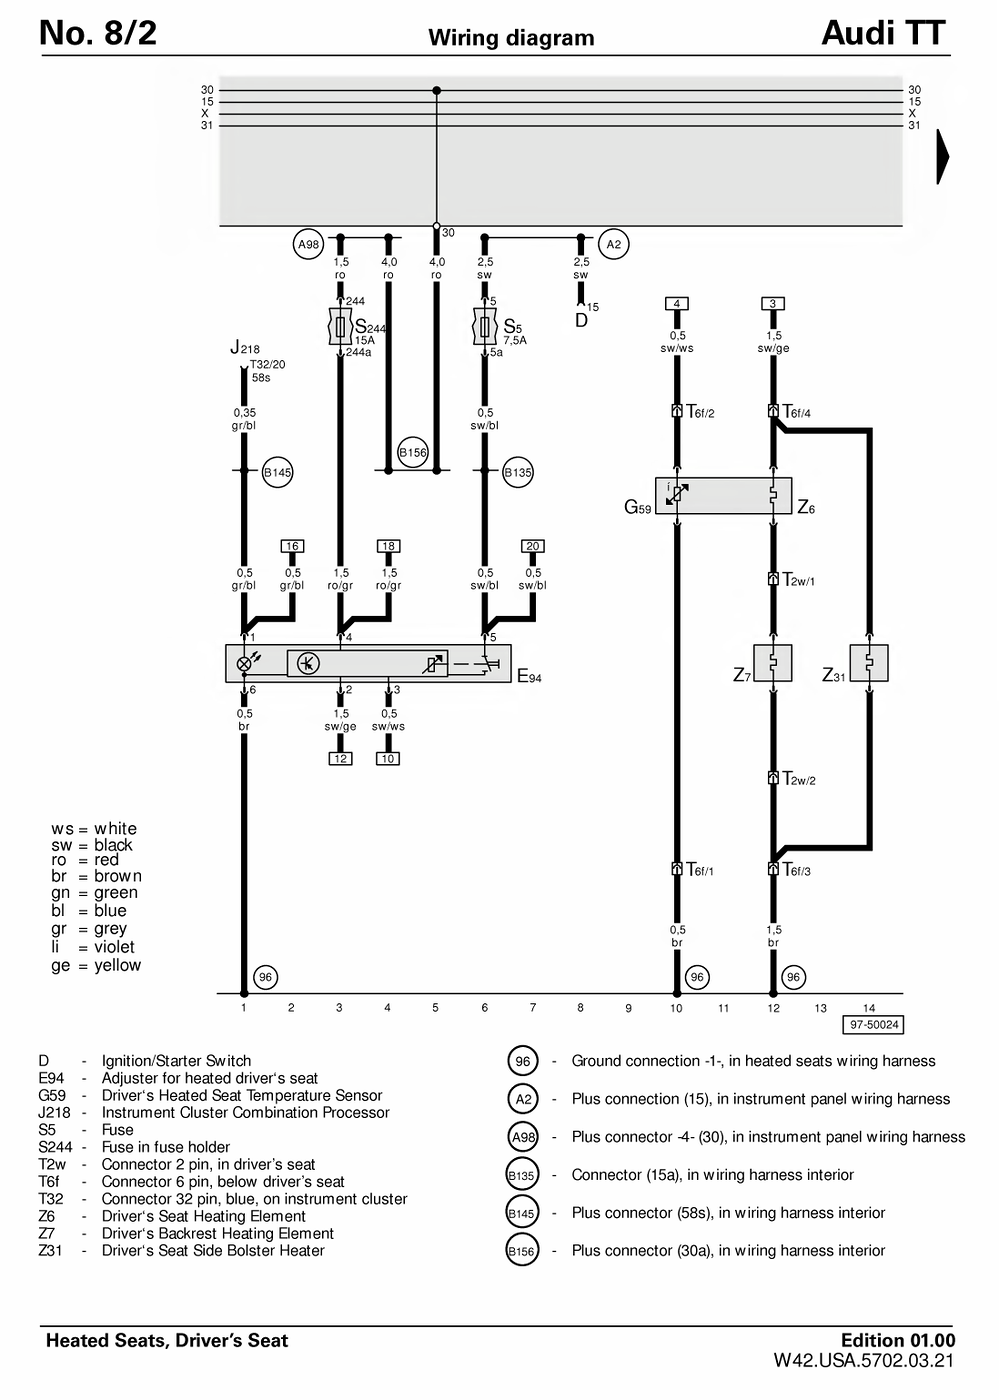 Audi Tt Mk2 Wiring Diagram - Wiring Diagram All table-approve -  table-approve.huevoprint.it | Audi Tt Engine Wiring Diagram |  | Huevoprint